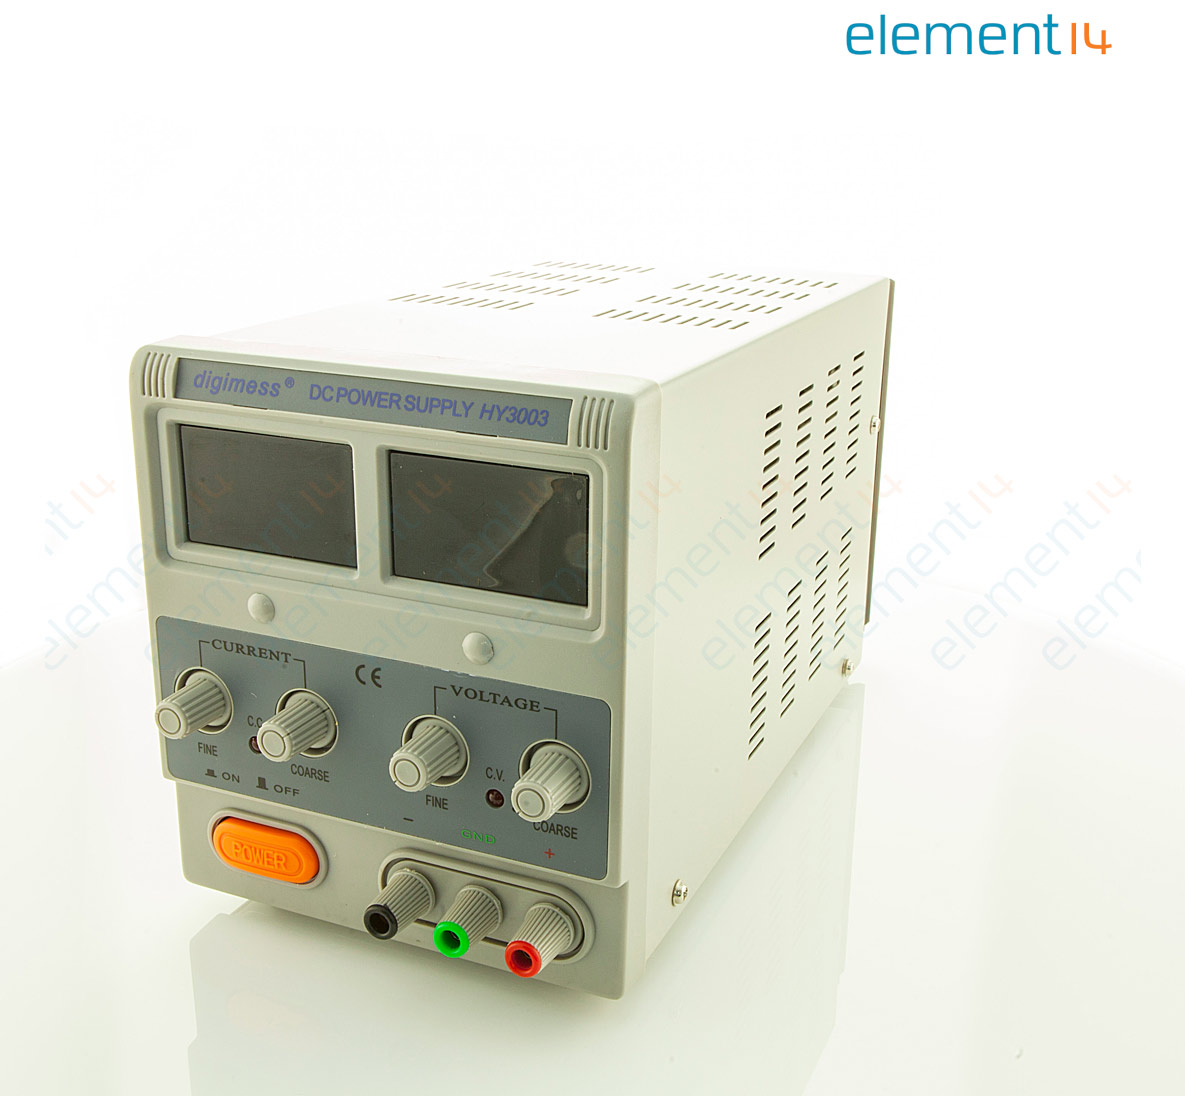 Hy3003 Digimess Bench Power Supply Adjustable 1 Output 0 V 30 V 0 A 3 A Element14